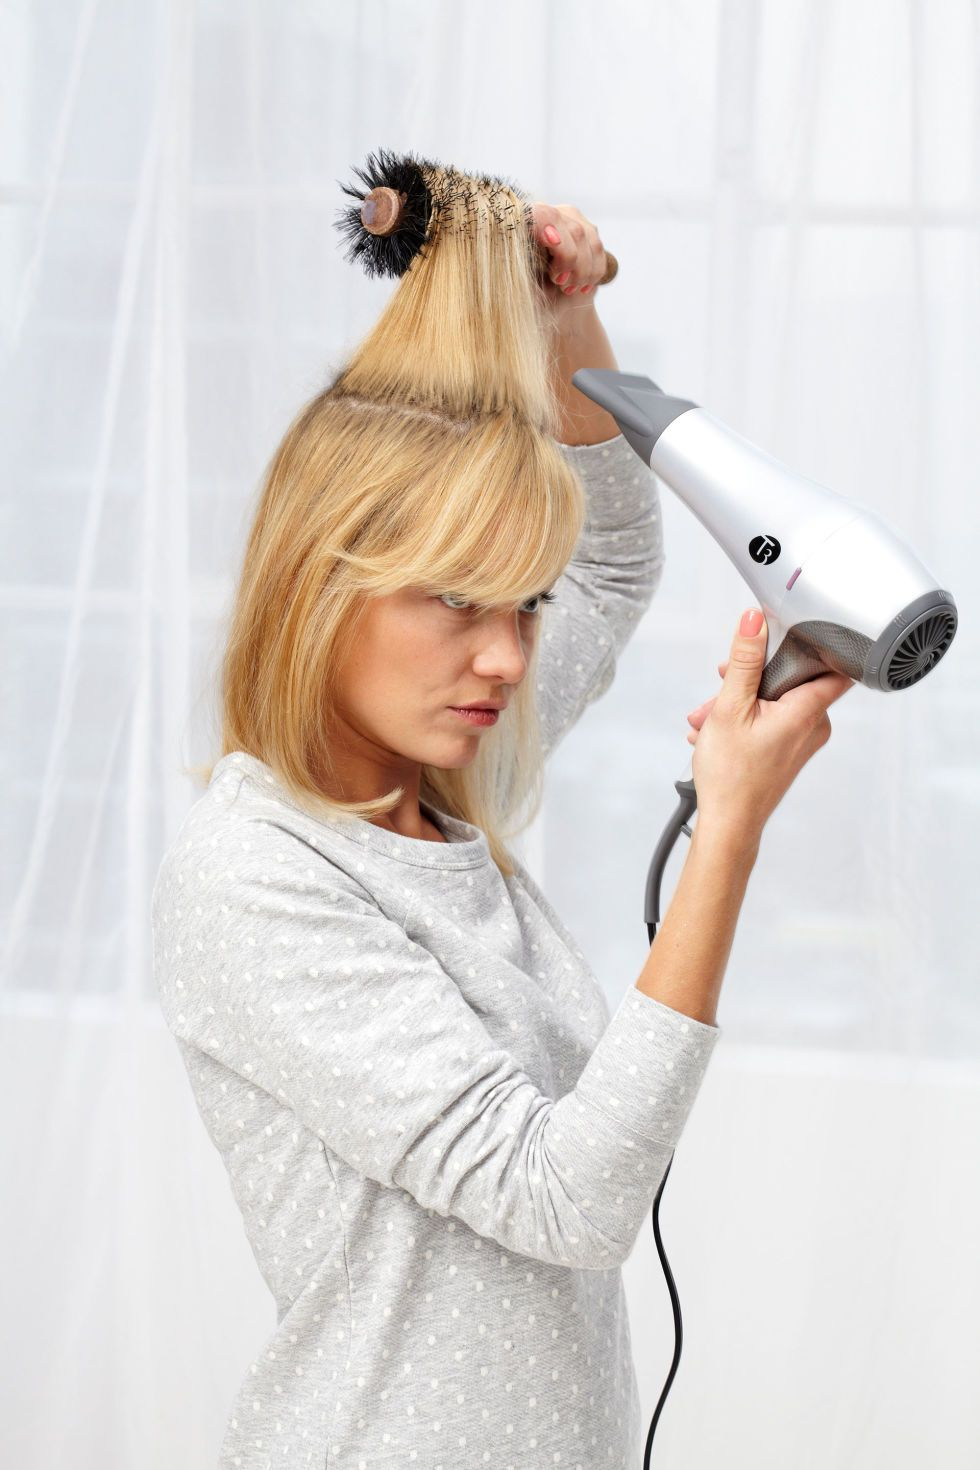 Master Class BlowDry Your Hair Like a Pro Blow dry